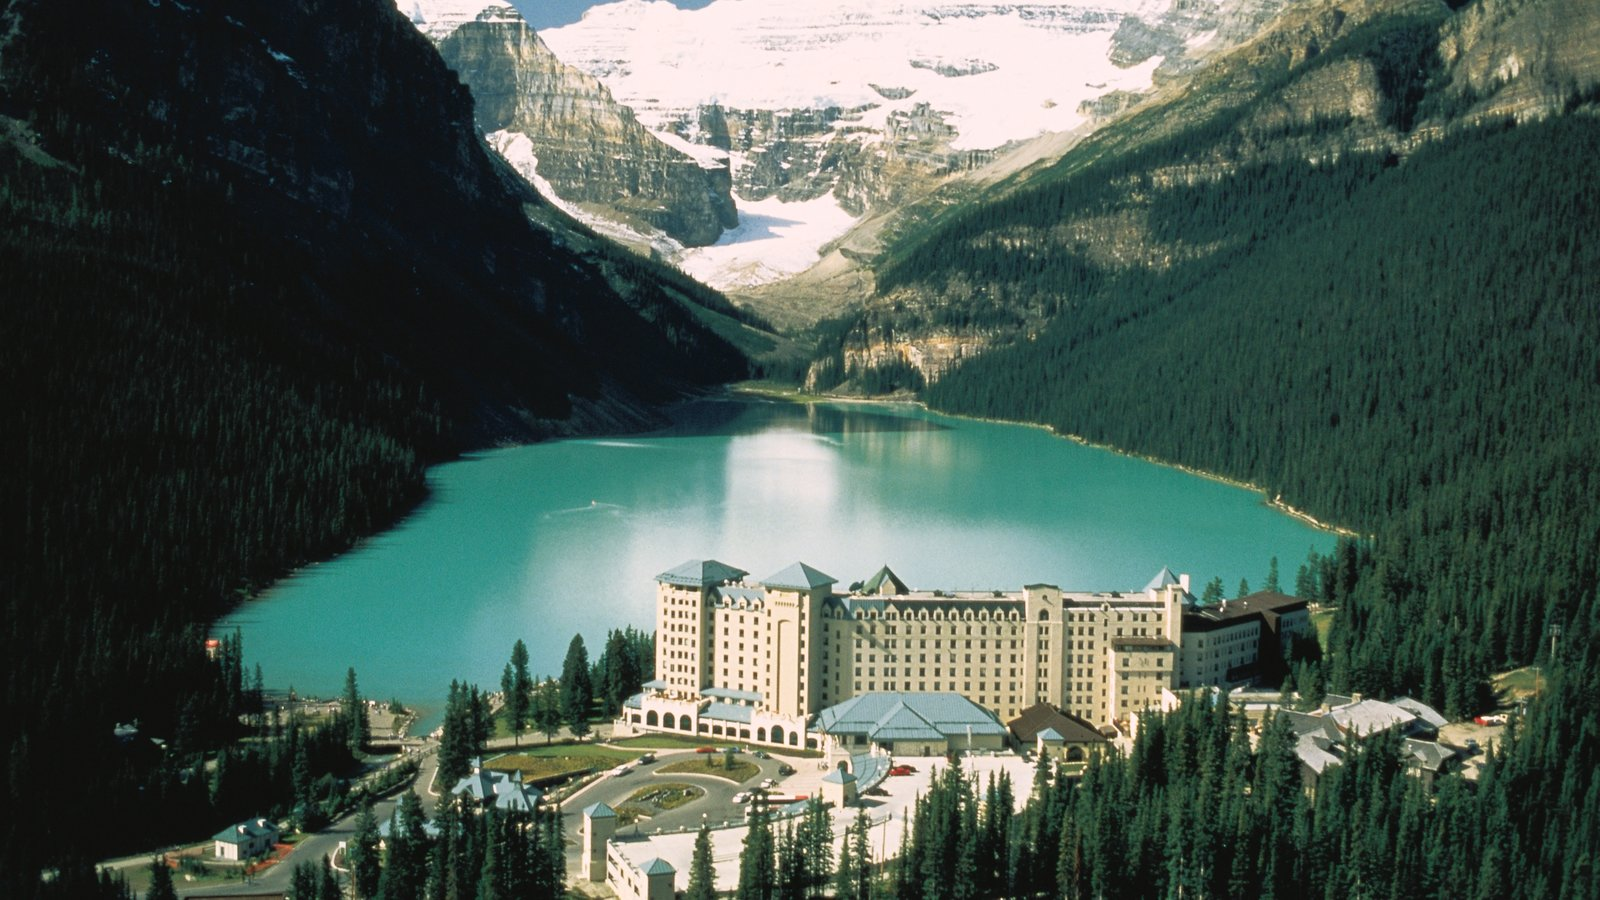 Lake Louise showing mountains, a park and a lake or waterhole